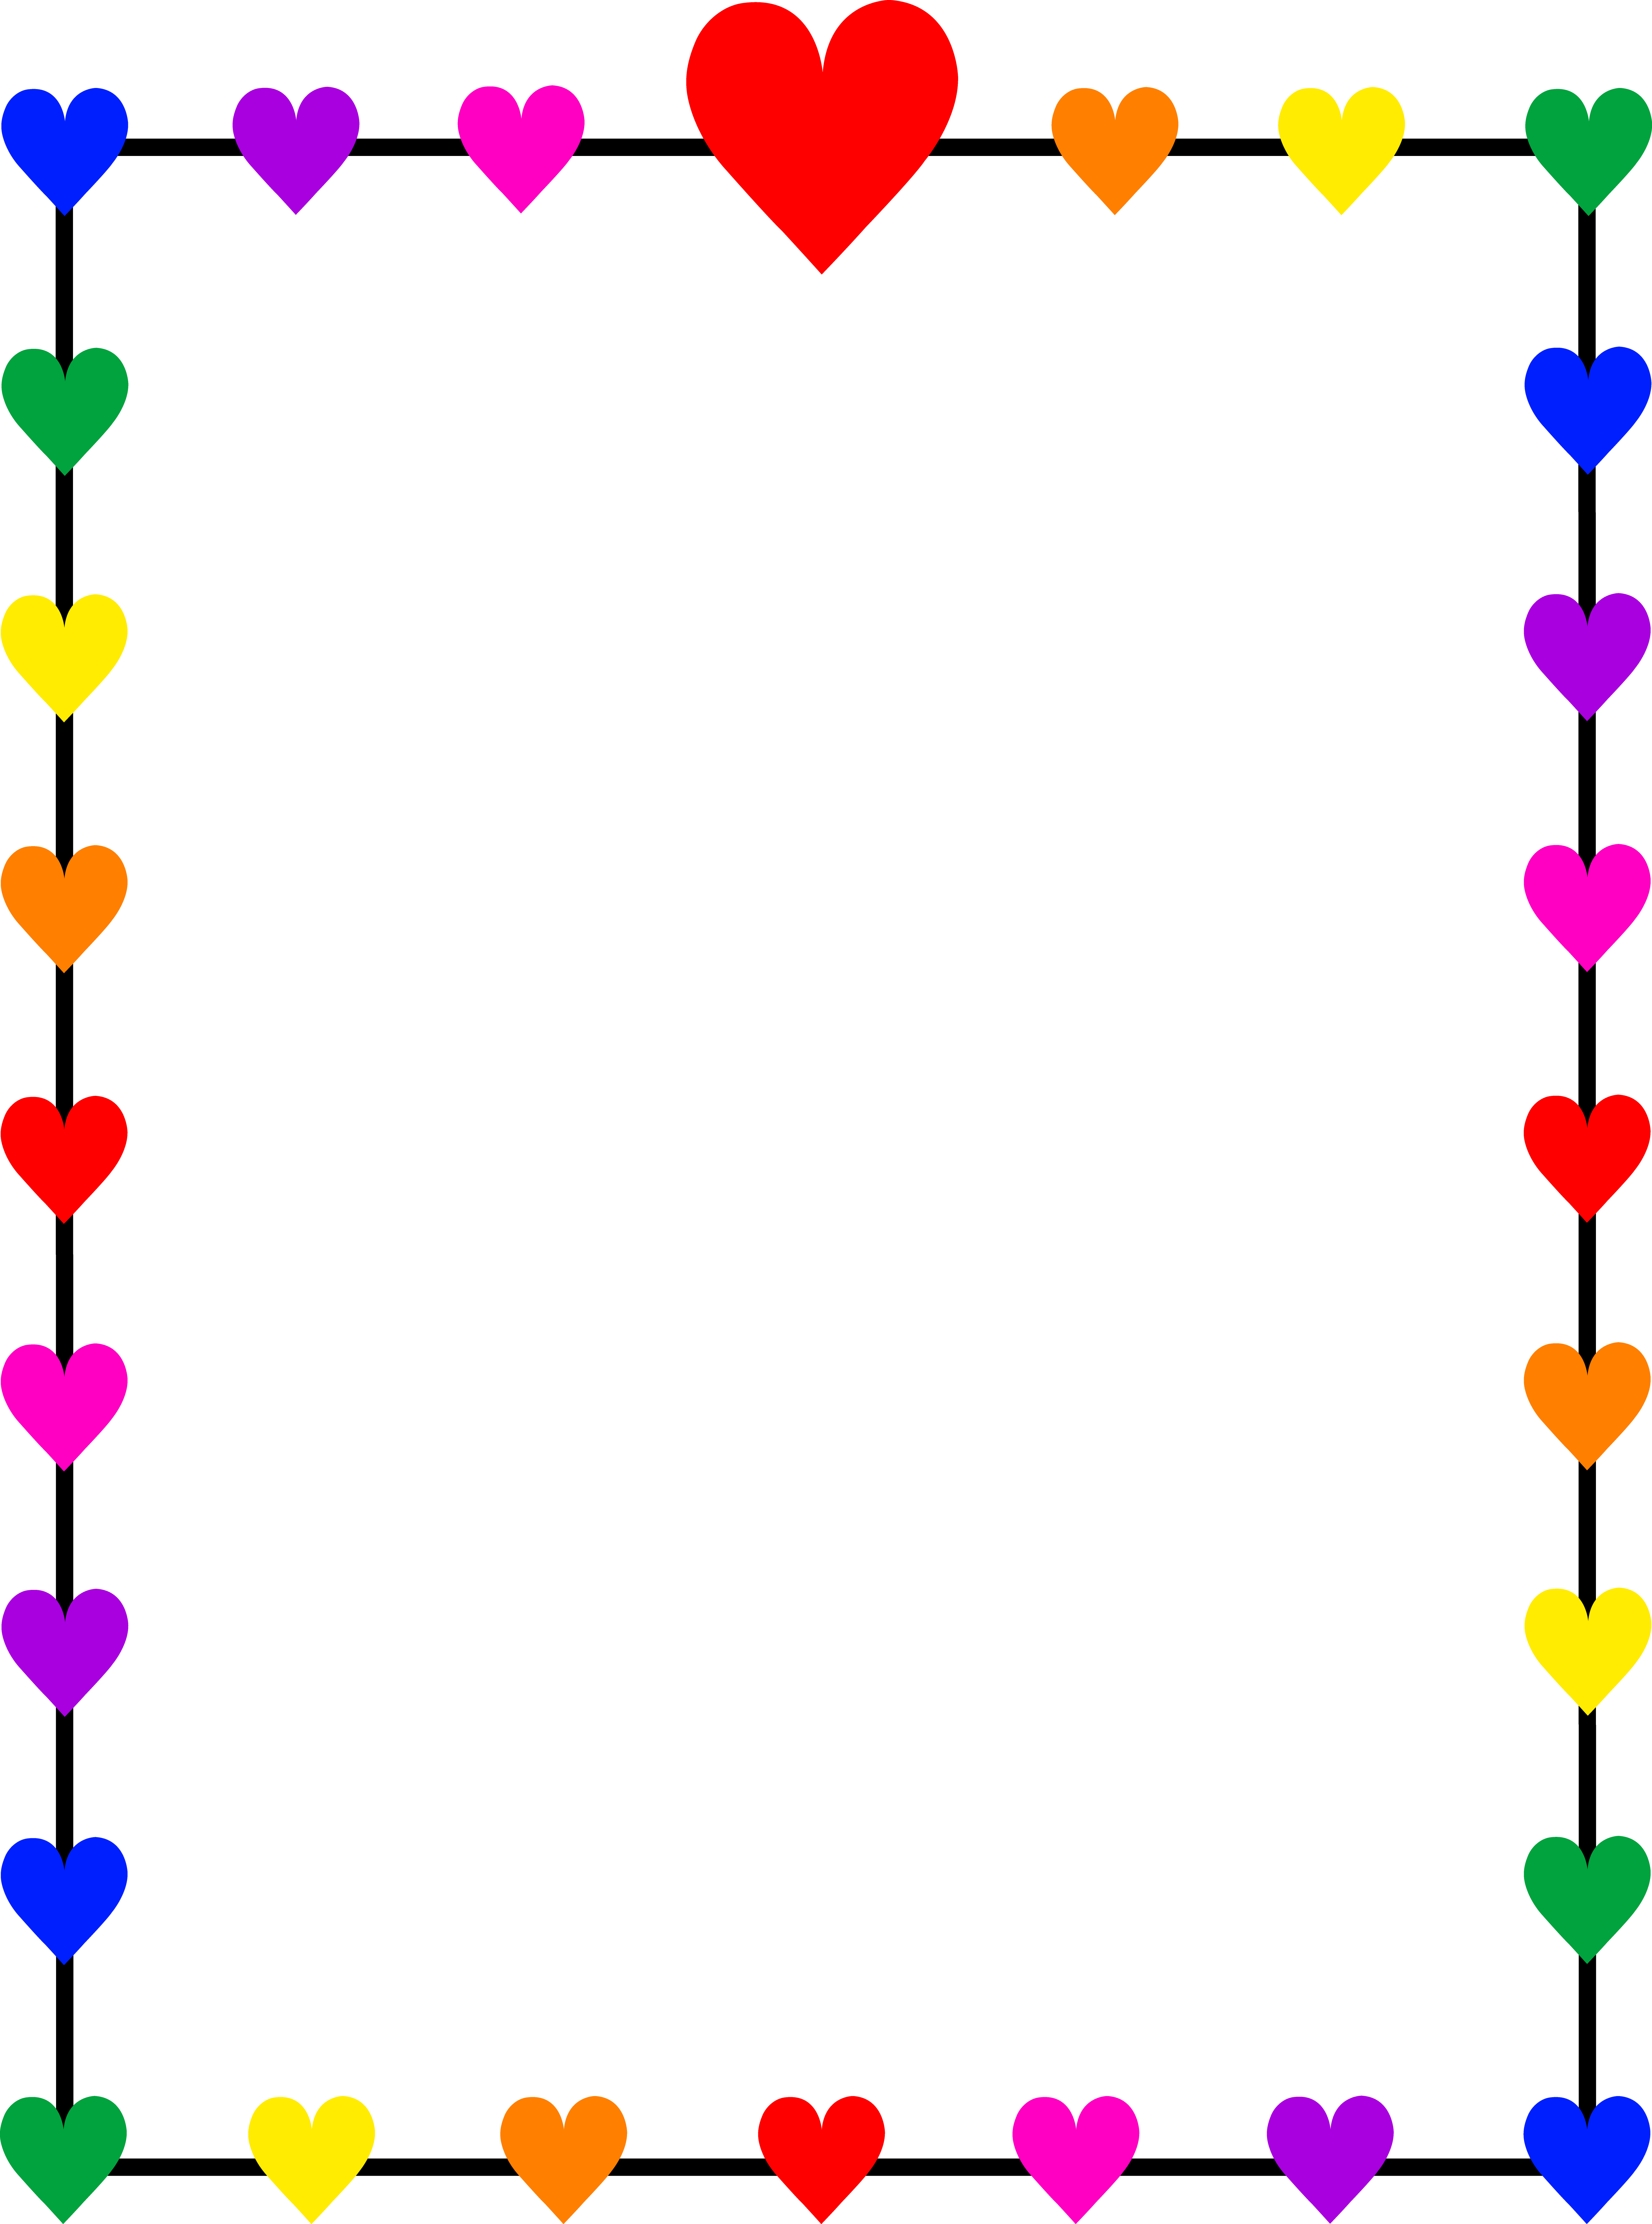 jpg freeuse library Clip art rainbow hearts. Clipart frames and borders